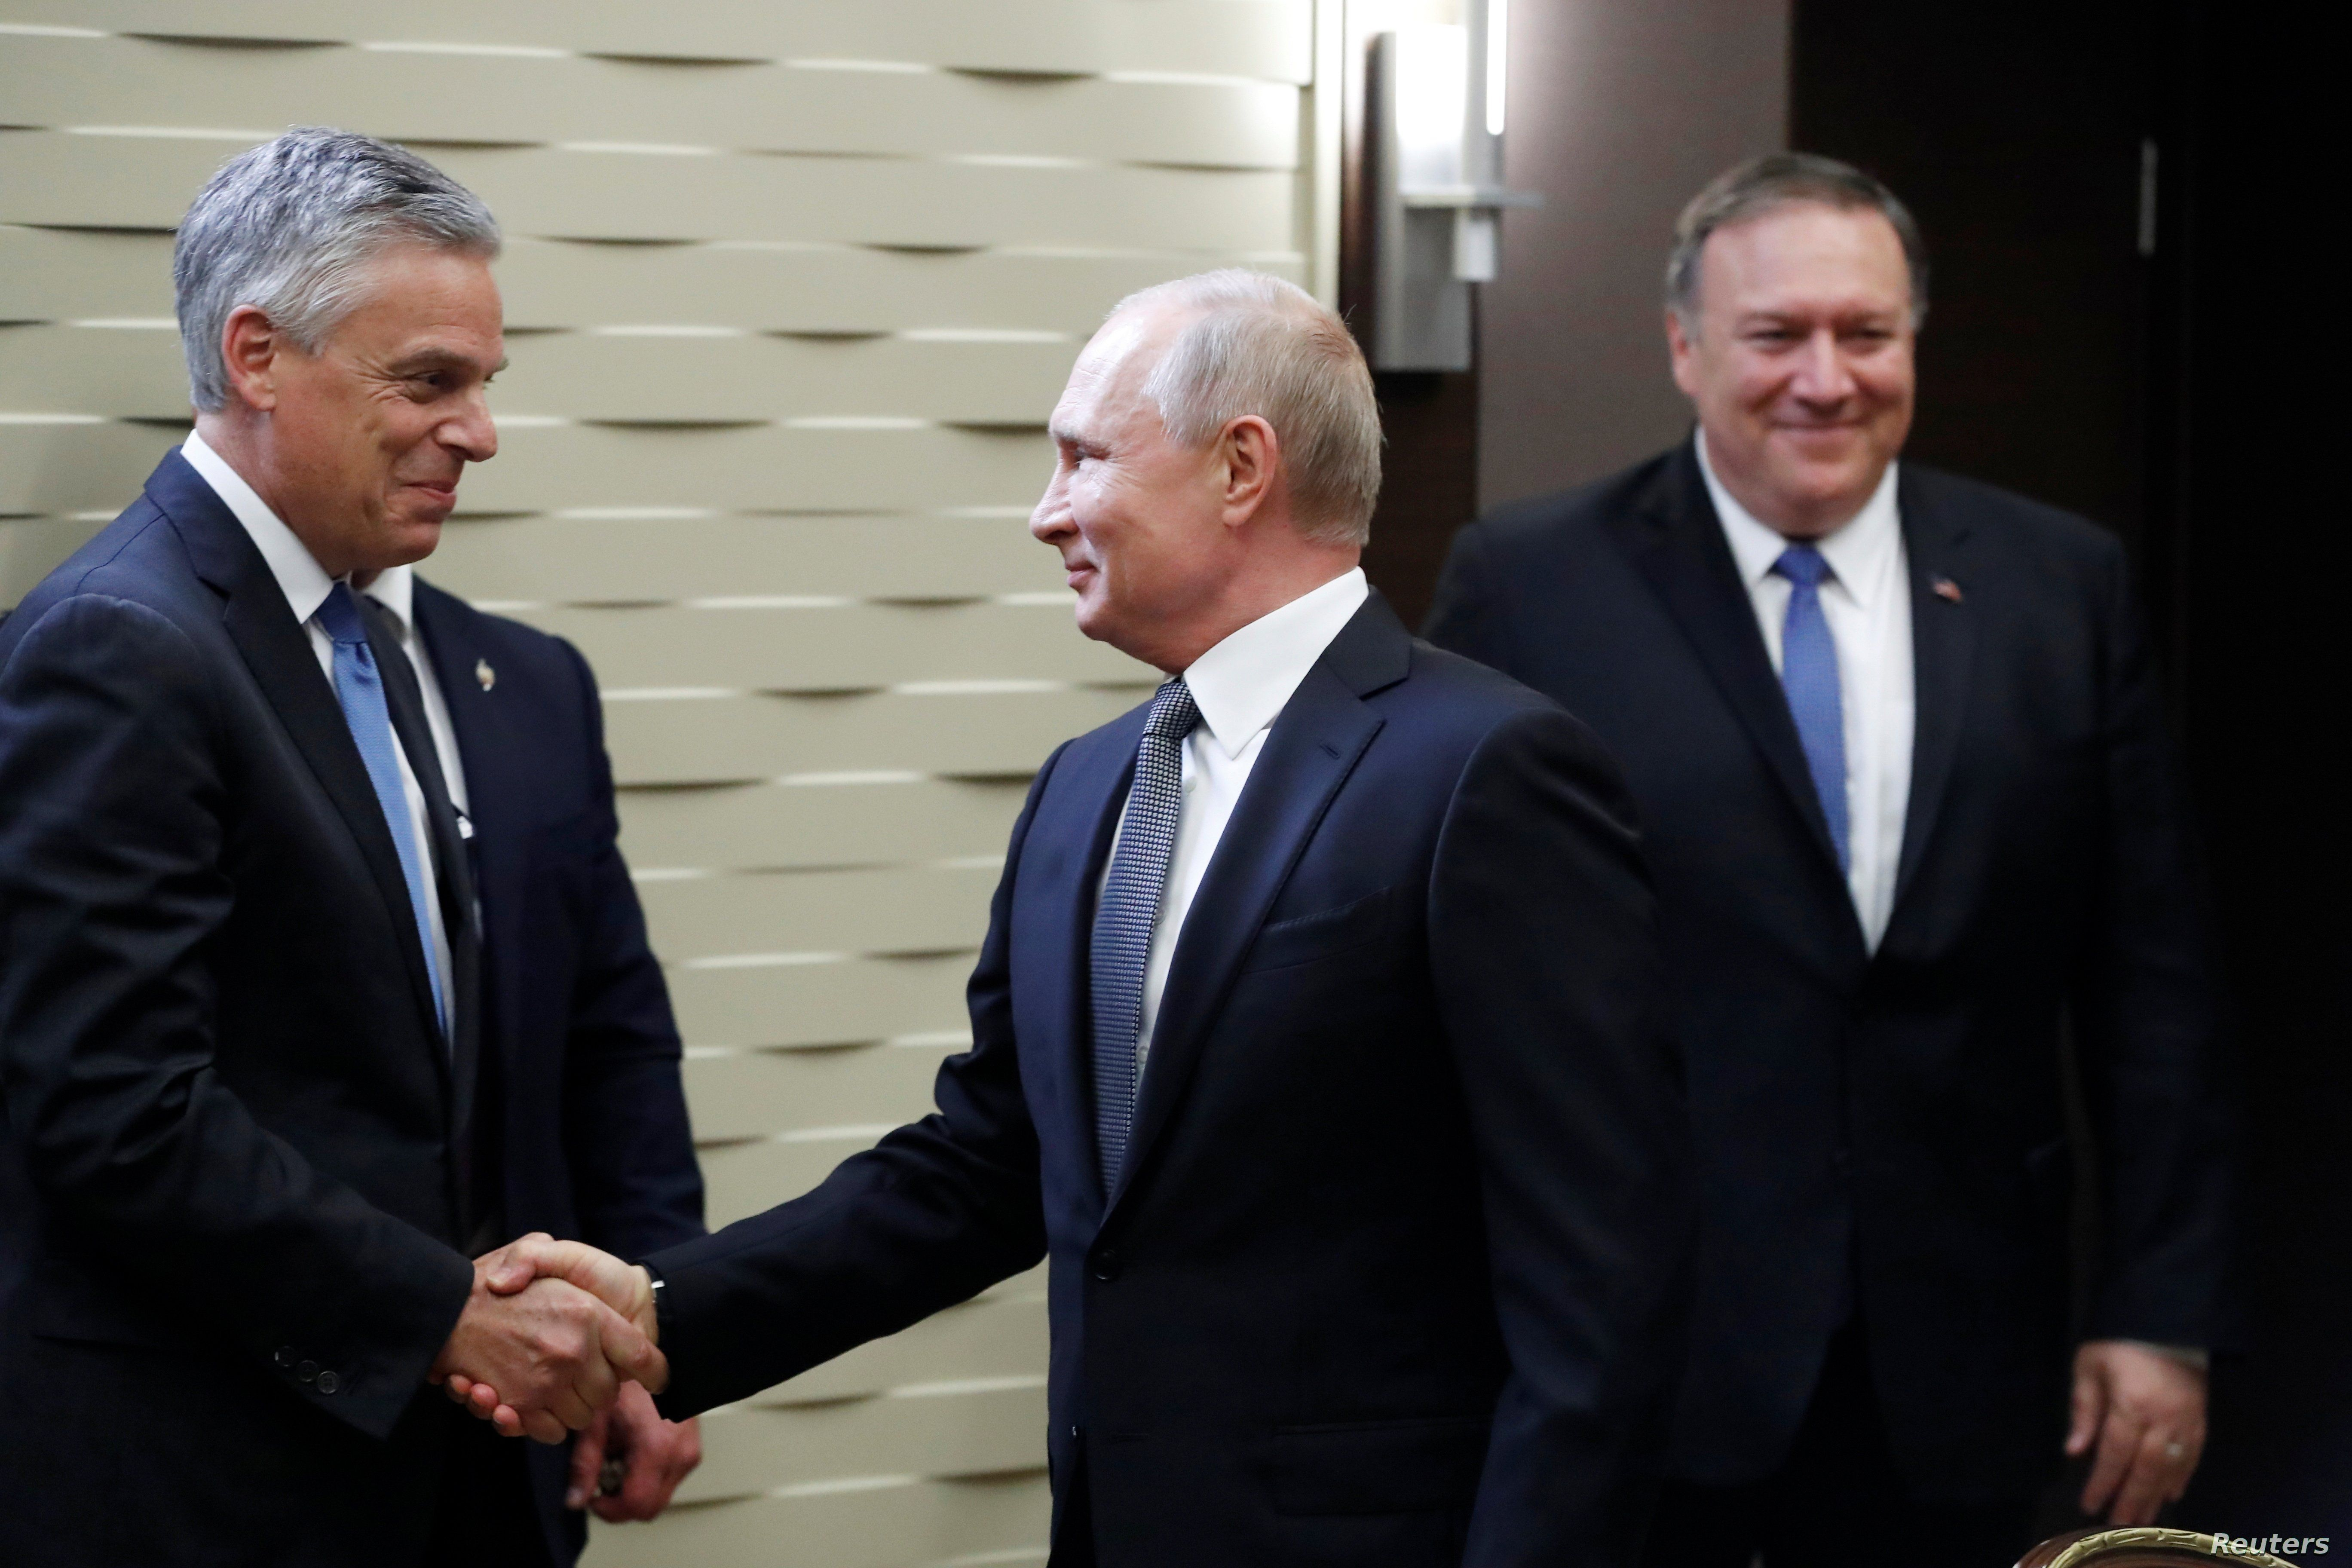 Russian President Vladimir Putin shakes hands with U.S. Ambassador to Russia Jon Huntsman, left, as U.S. Secretary of State Mike Pompeo stands behind prior to their talks in the Black Sea resort city of Sochi, May 14, 2019.